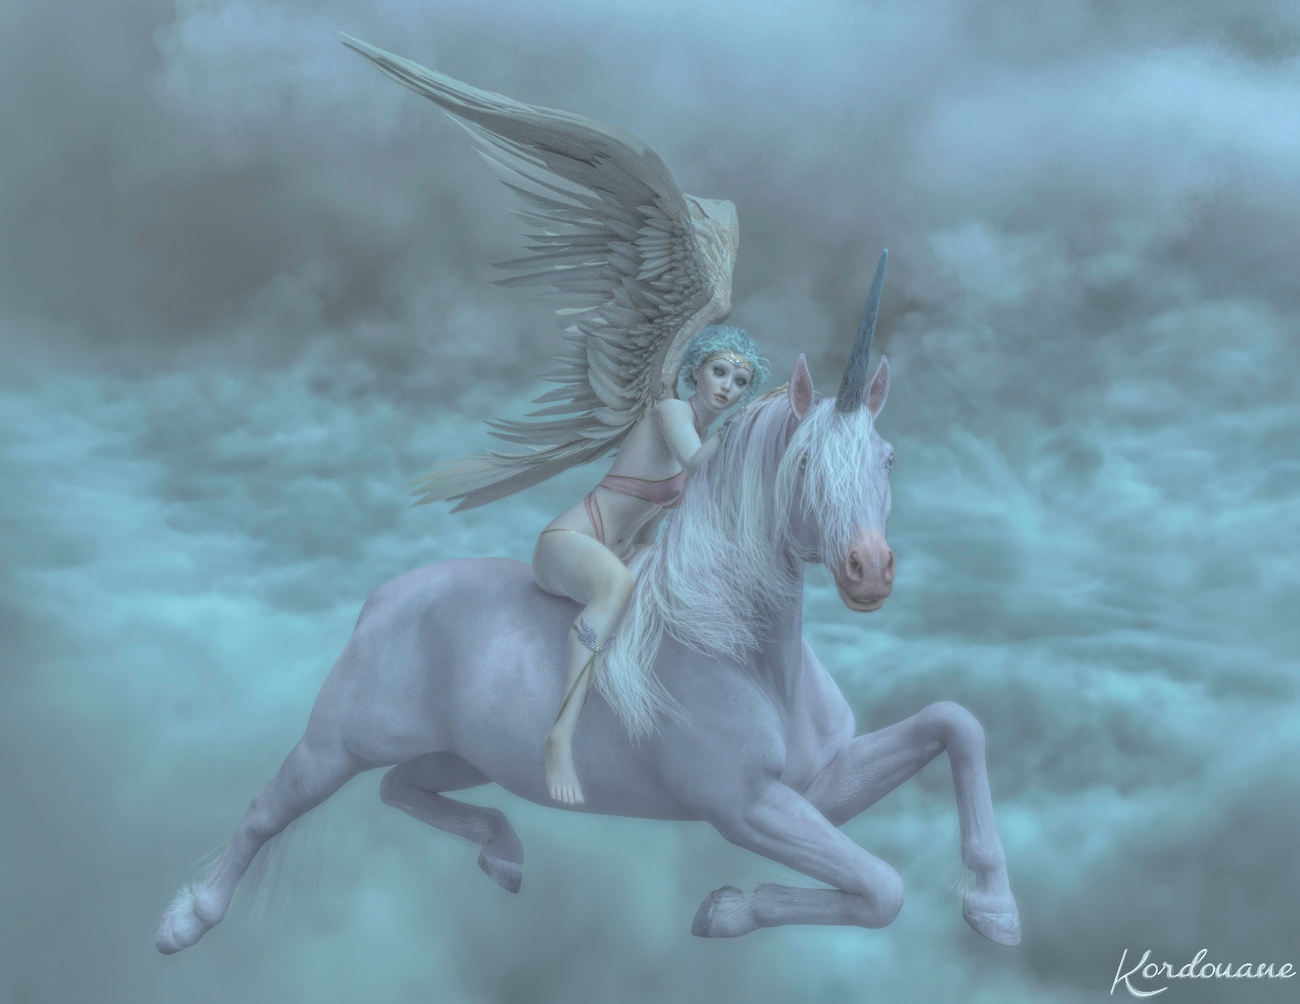 The angel and the unicorn